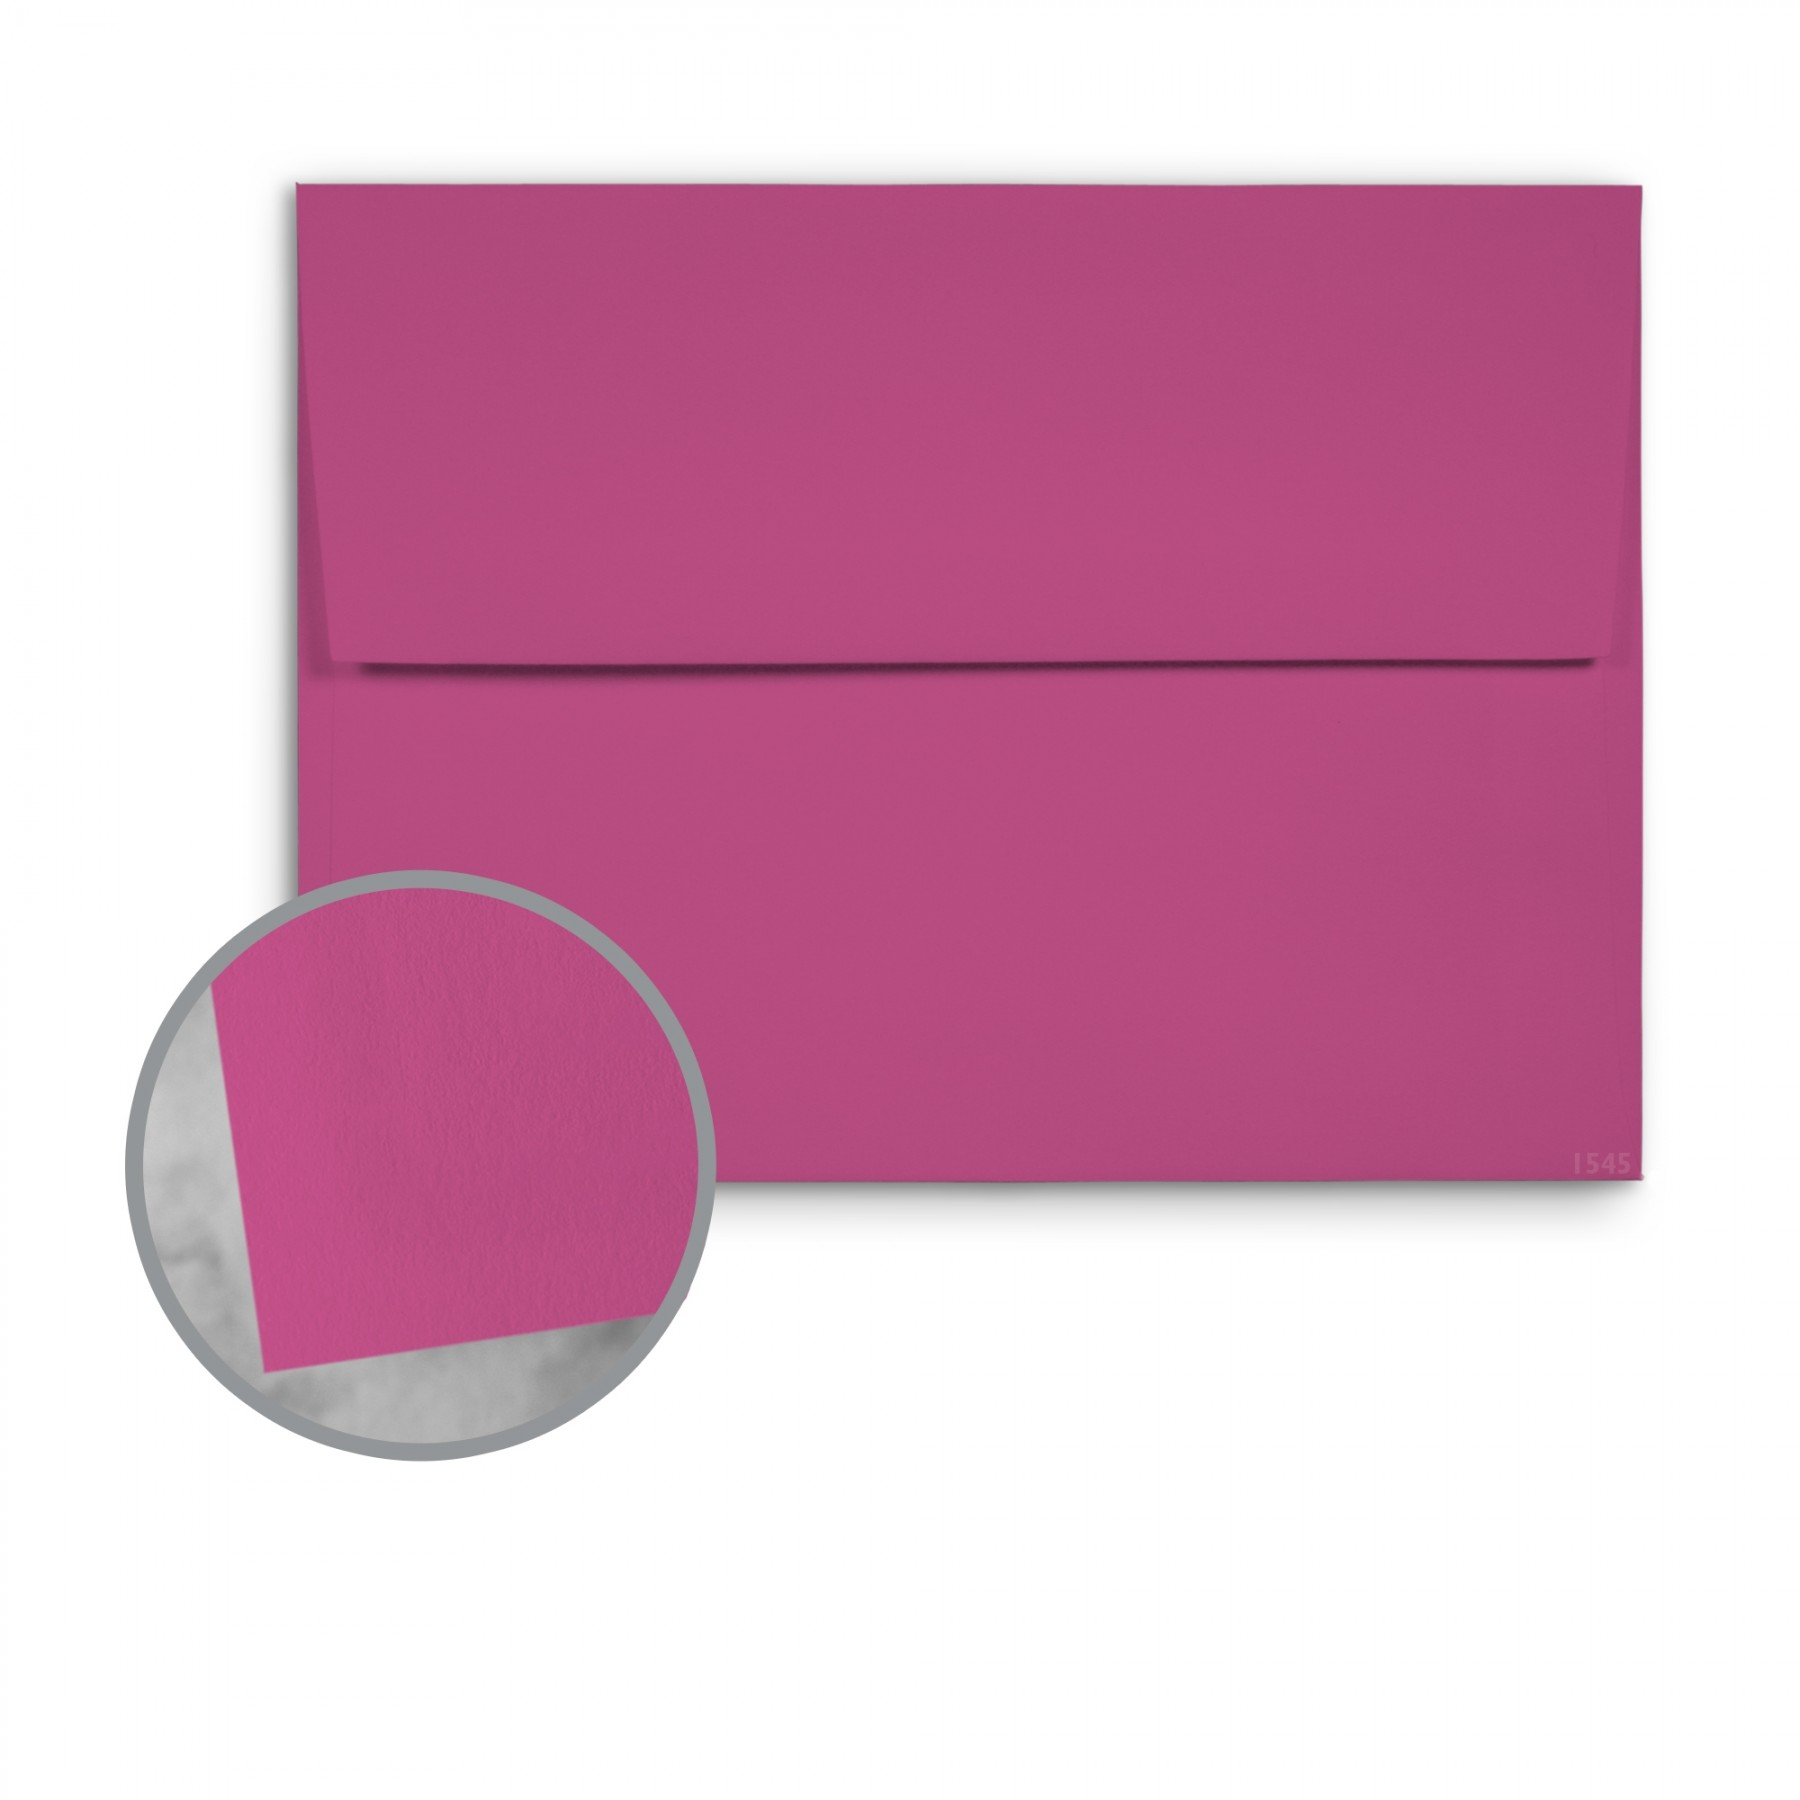 Basis Antique Vellum Dark Magenta Envelopes 70 lb Text Vellum - 250 per Box